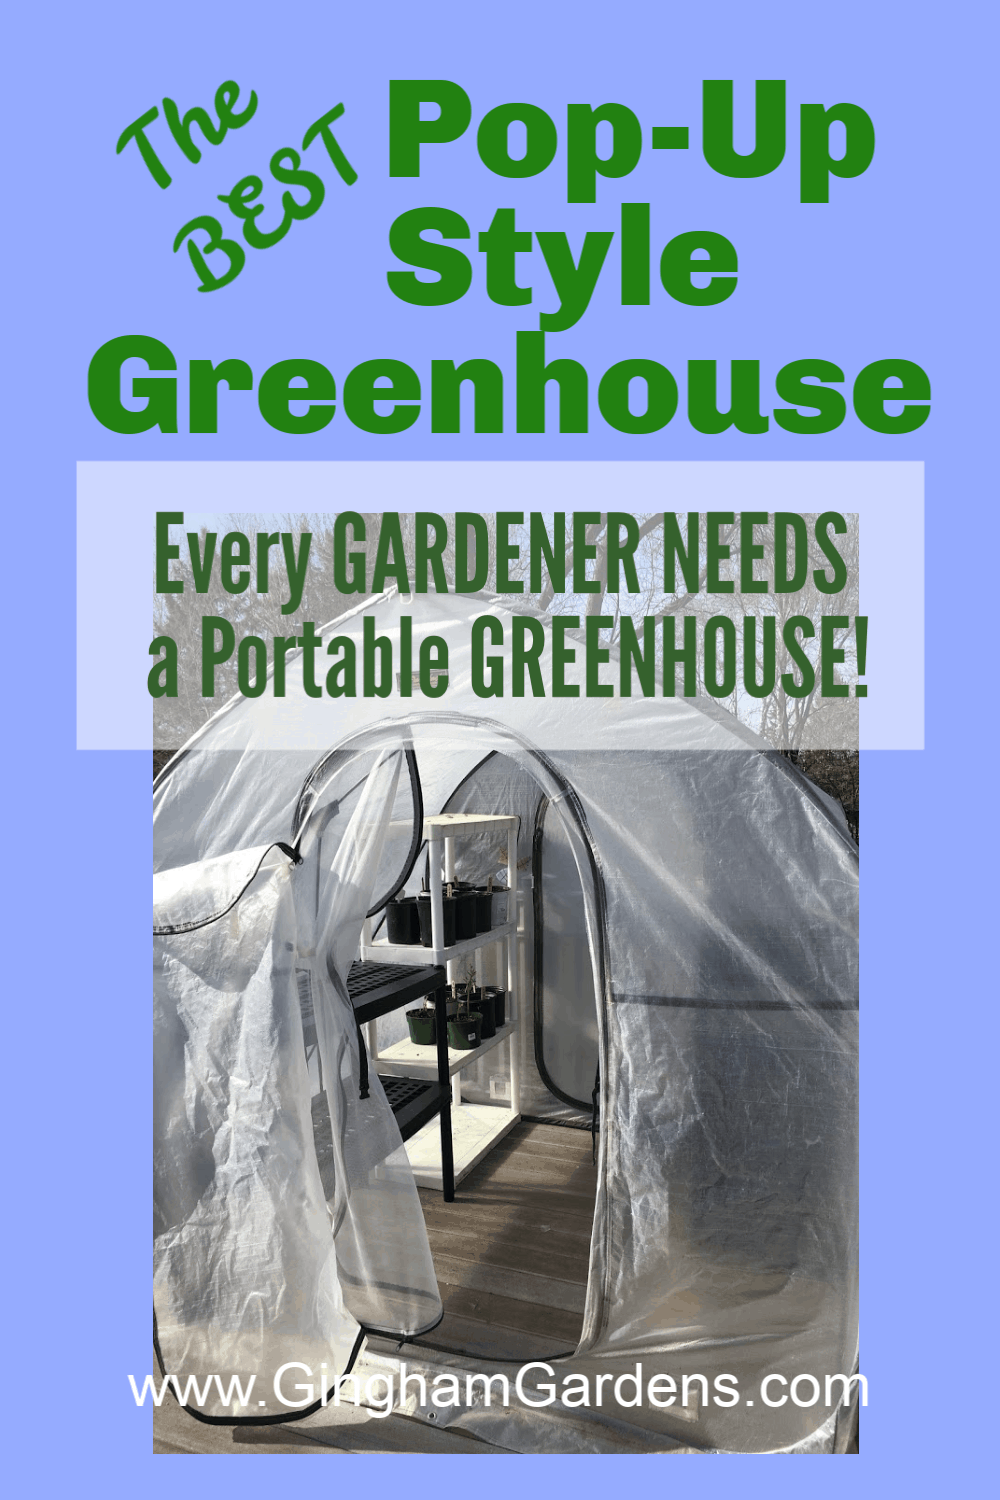 Greenhouse with text overlay - The Best Pop-up Style Greenhouse